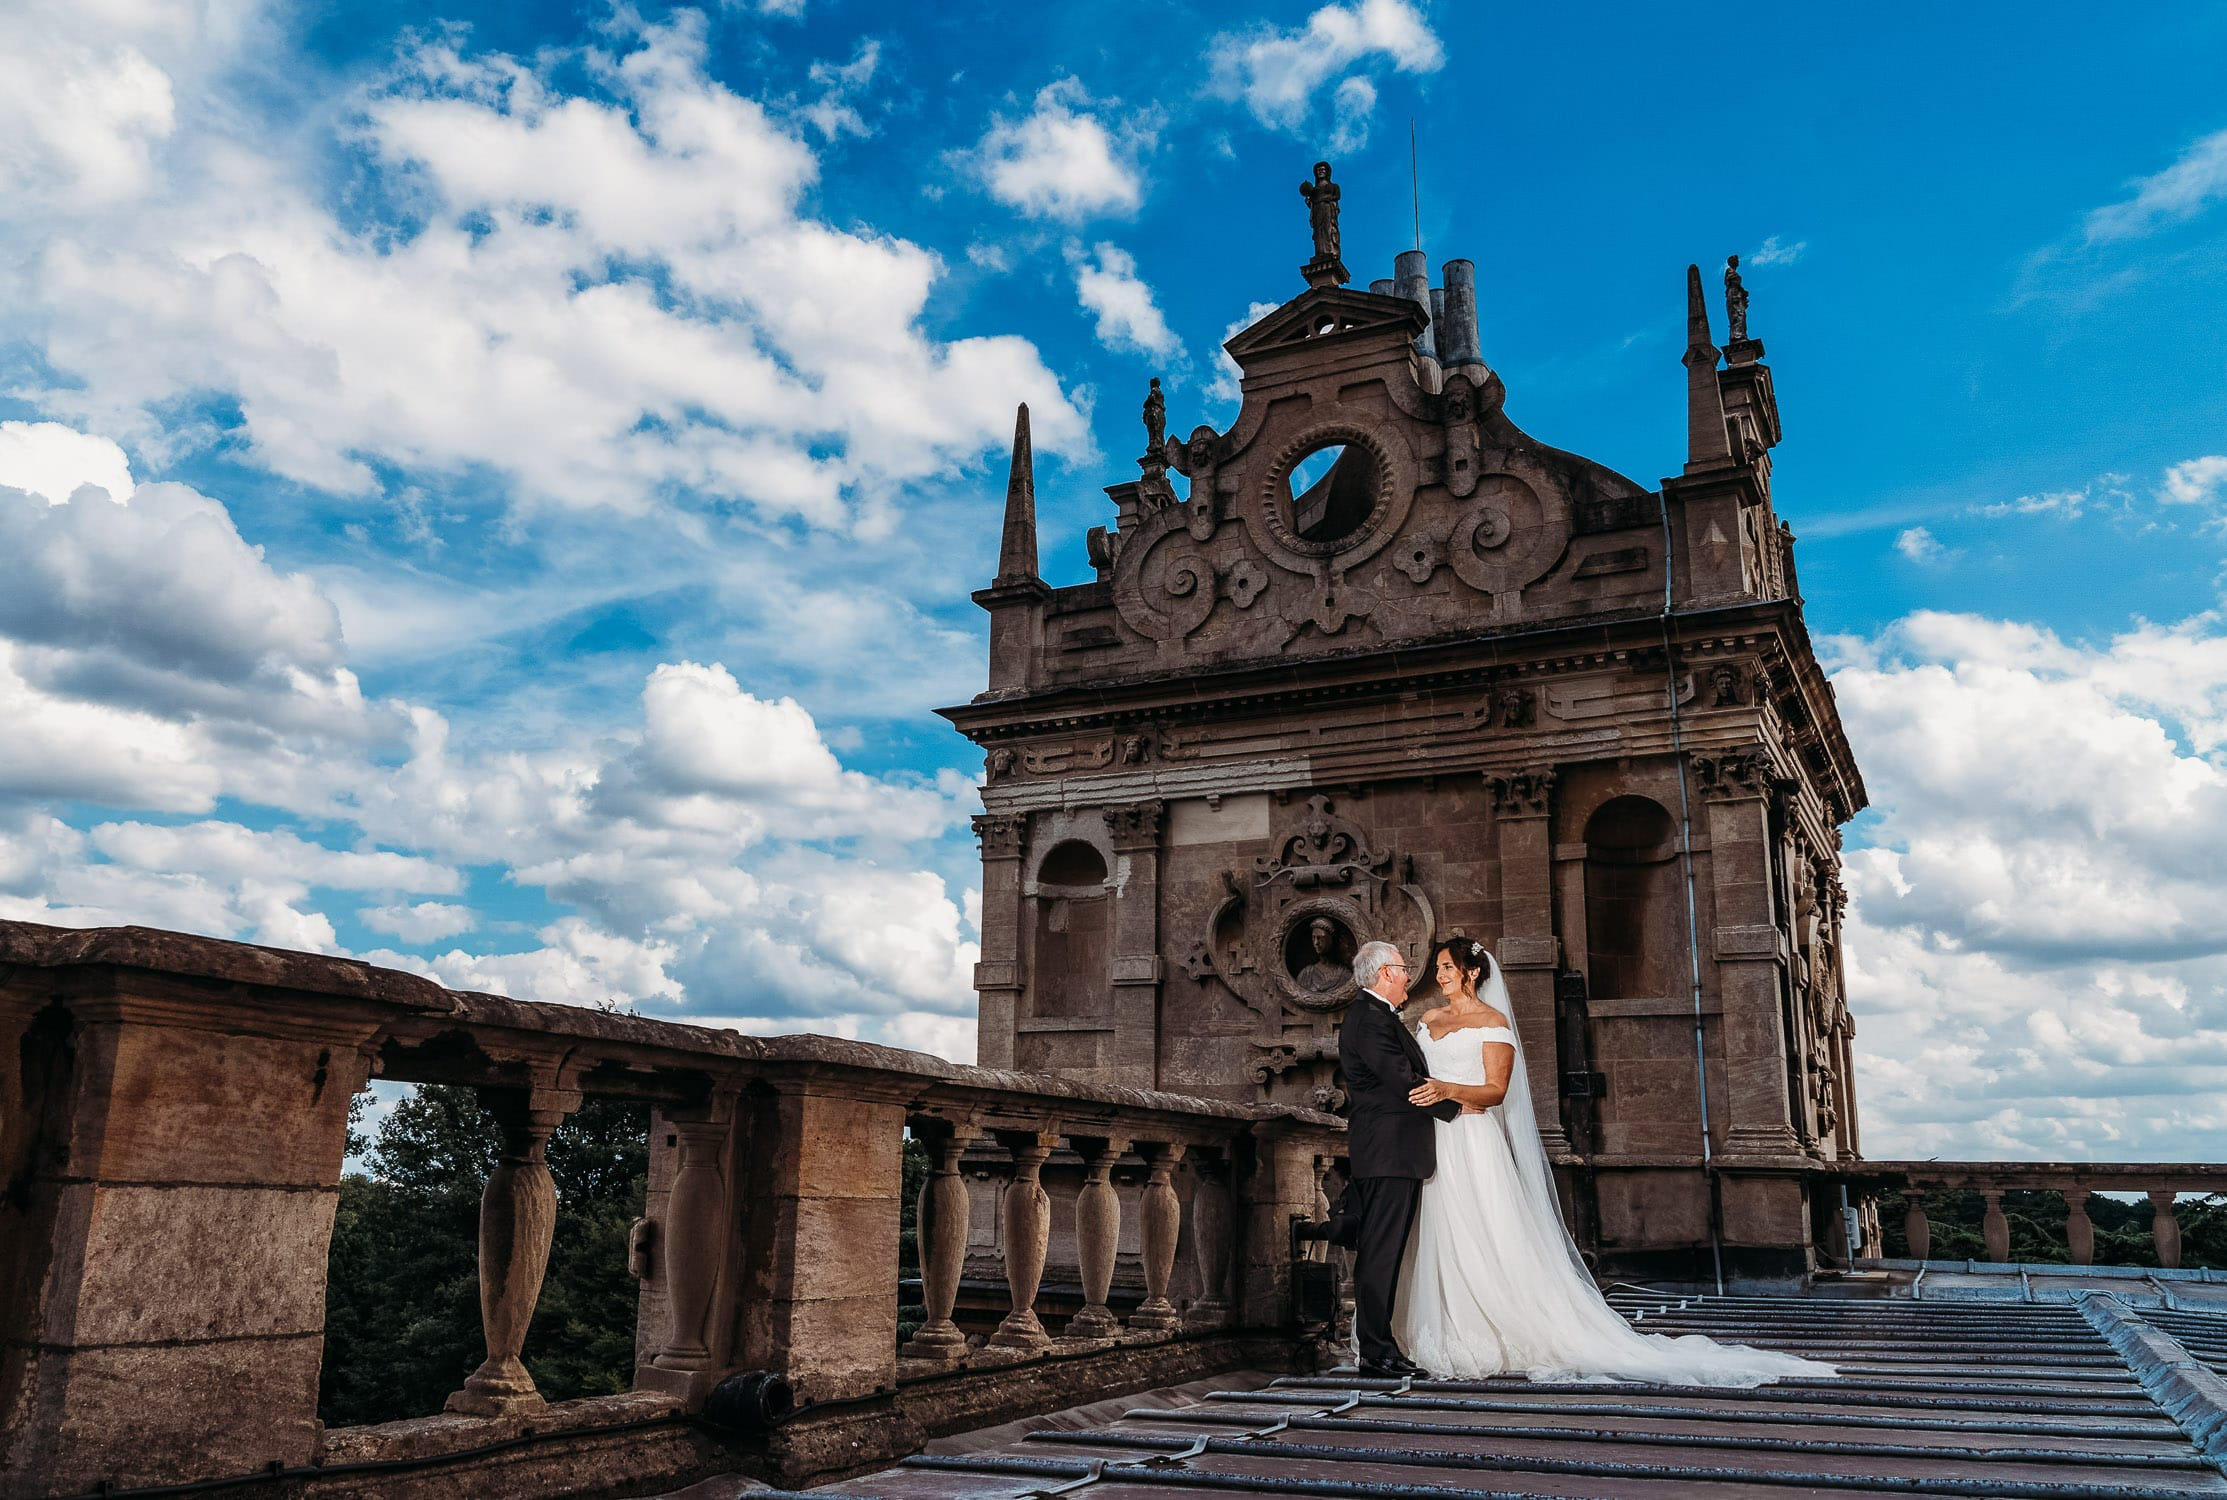 Wedding photo on the roof of Wollaton Hall